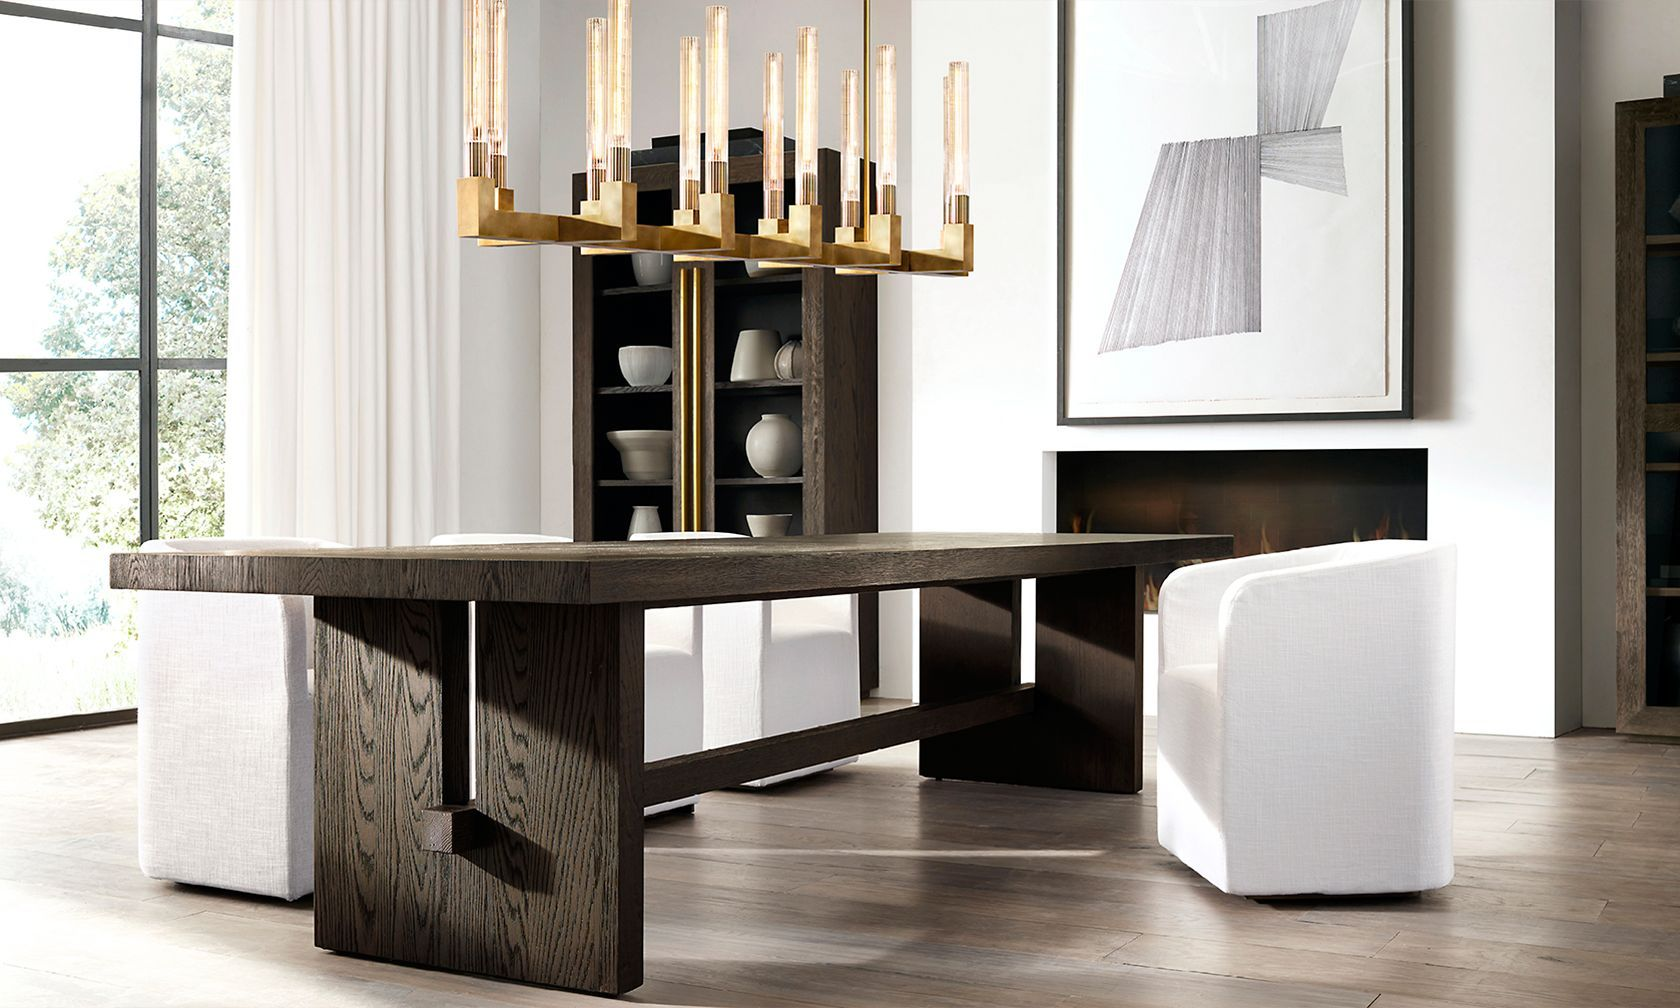 Restoration hardware dining room - Introducing The Pacamara Dining Table Collection